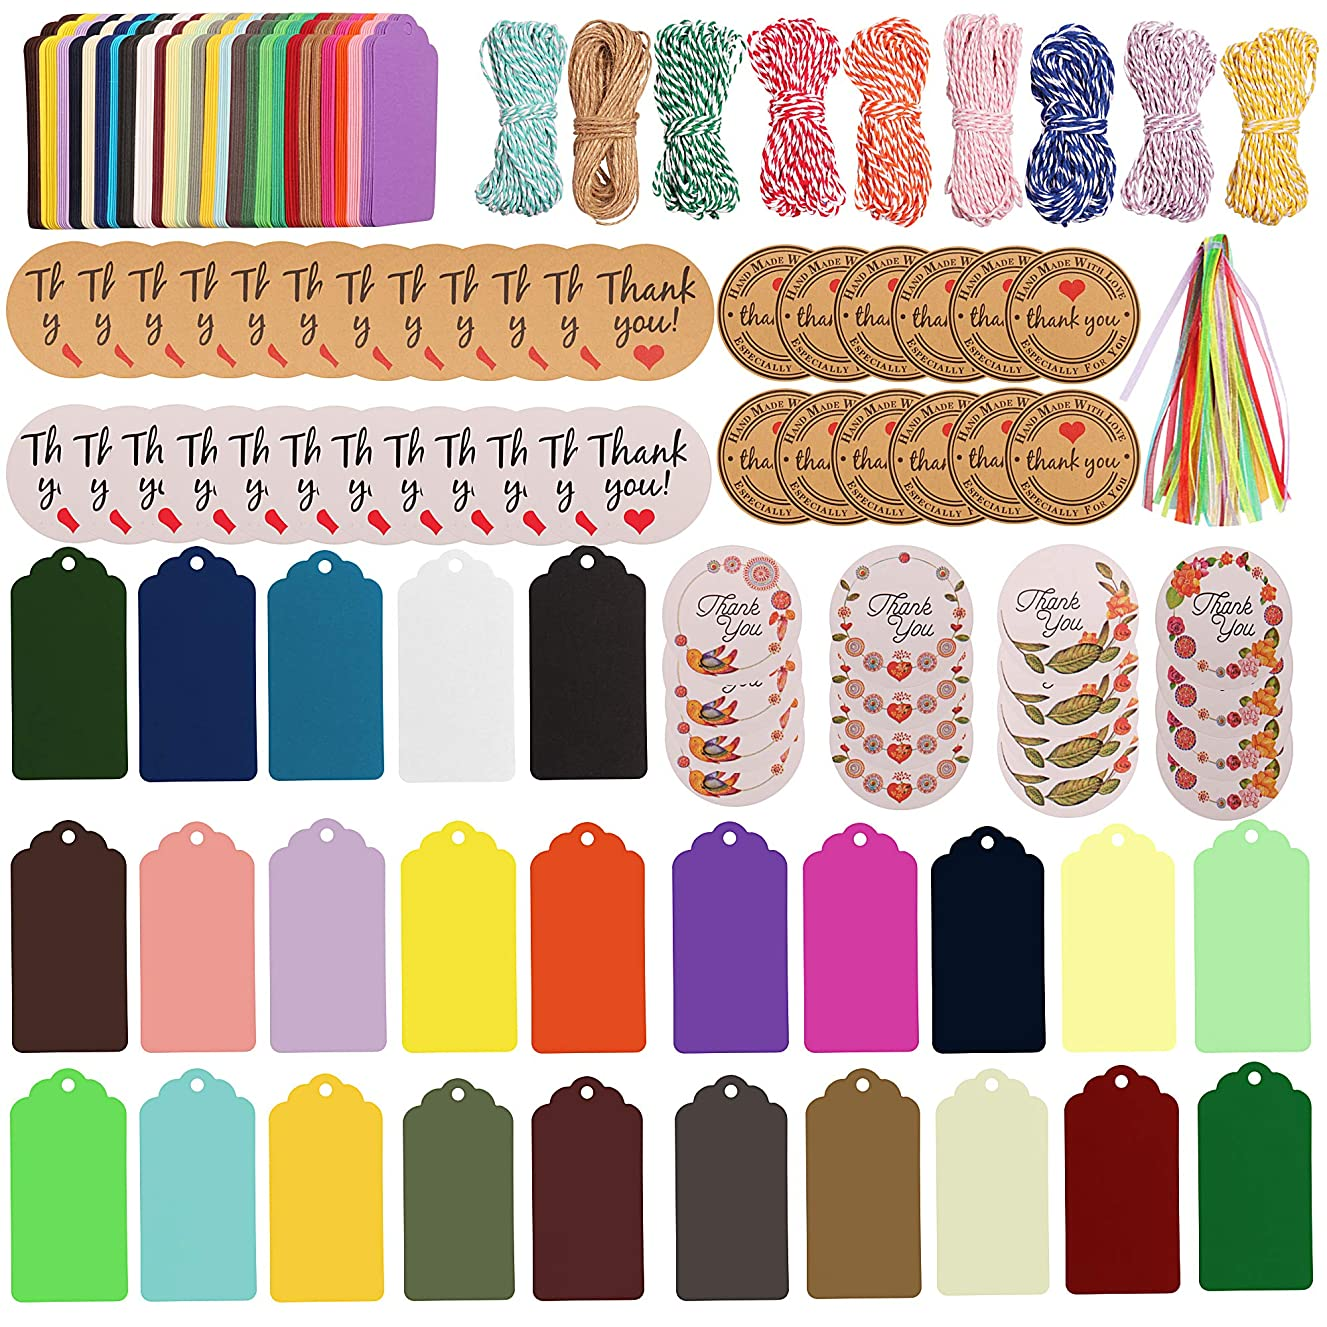 SUBANG 337 Pieces Gift Tags Set Including 250 Pcs 25 Colors Gift Paper Tags, 30 Pcs Ribbons, 9 Pcs Bakers Twine and 48 Pcs Thank You Stickers for Arts and Crafts, Wedding Christmas Day